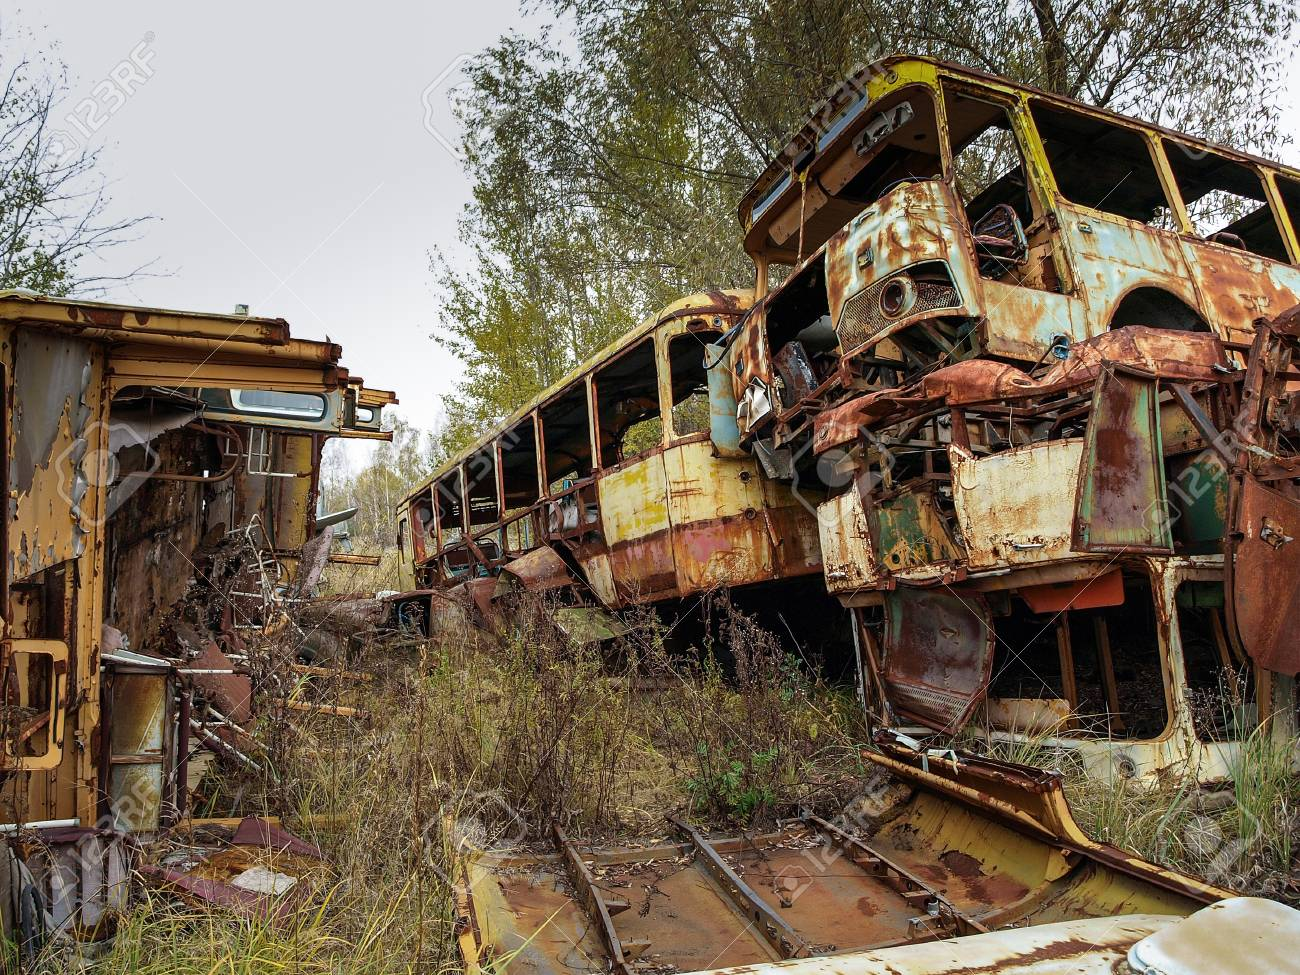 Scrap Yard In The Chernobyl Exclusion Zone With Old Military.. Stock ...